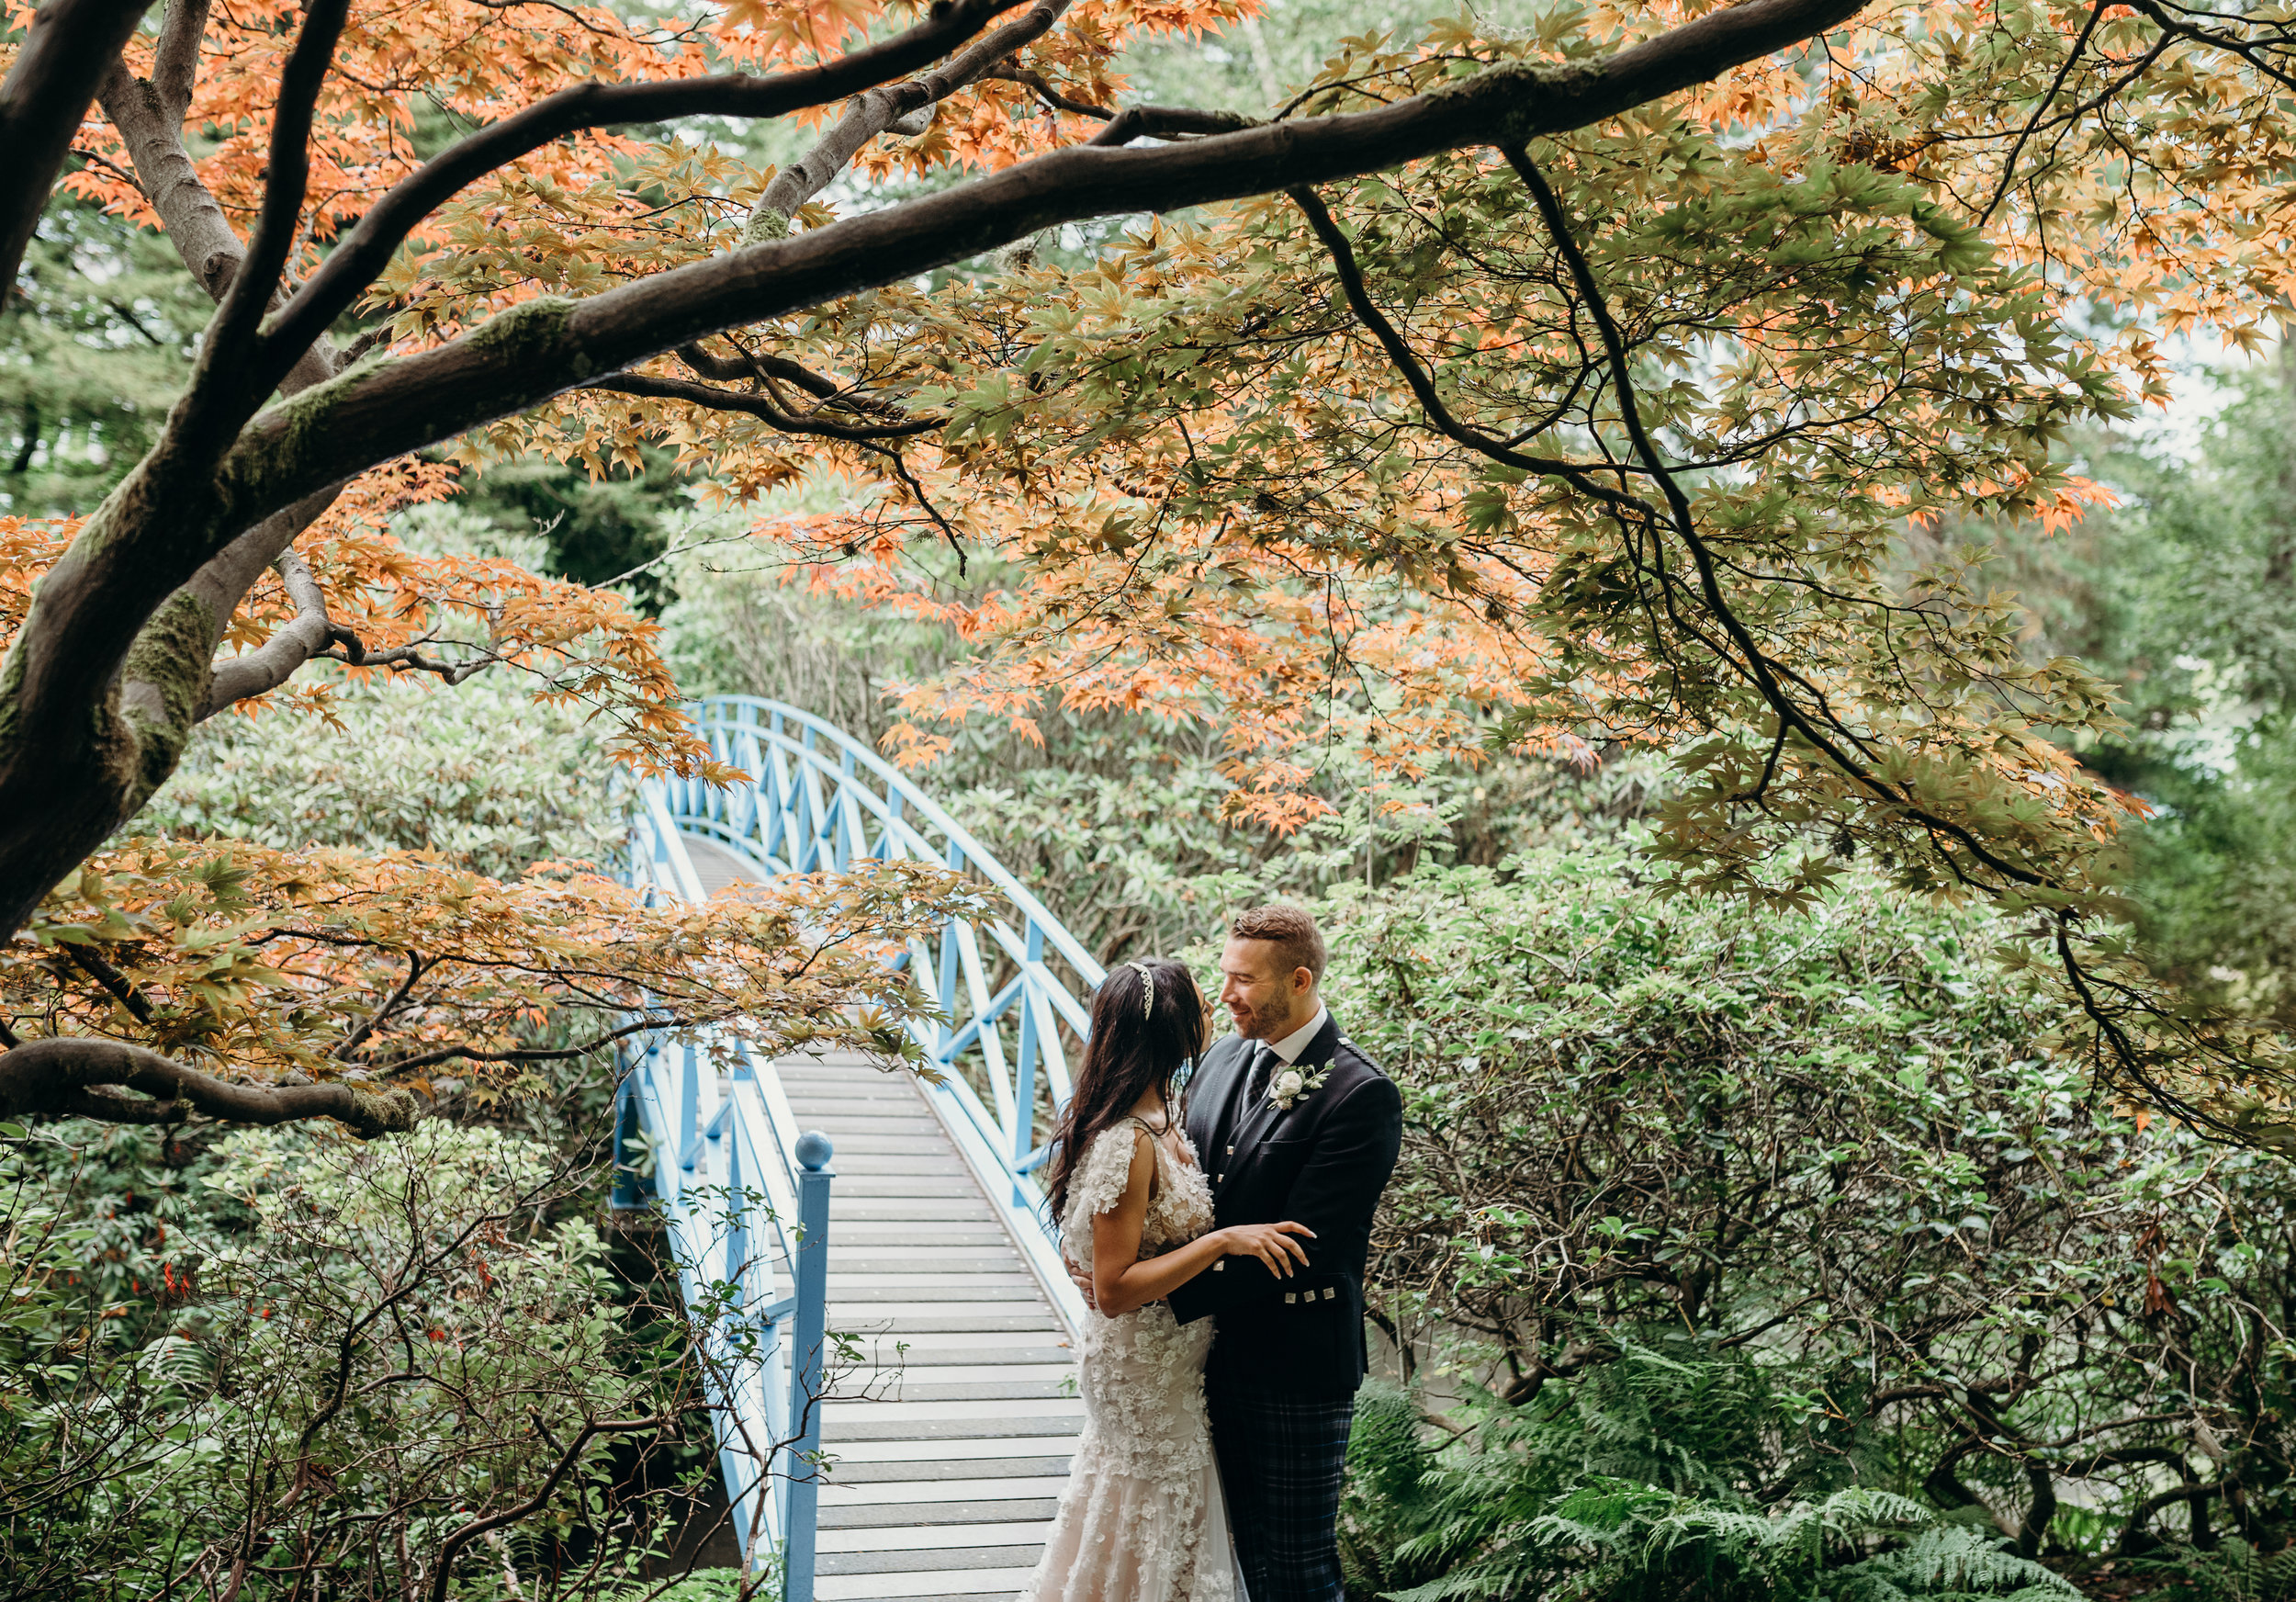 Widad & Ryan - We had the pleasure of using Nicola for our wedding day. Can't recommend her enough. She captured each and every moment perfectly and felt more like a guest than a photographer.